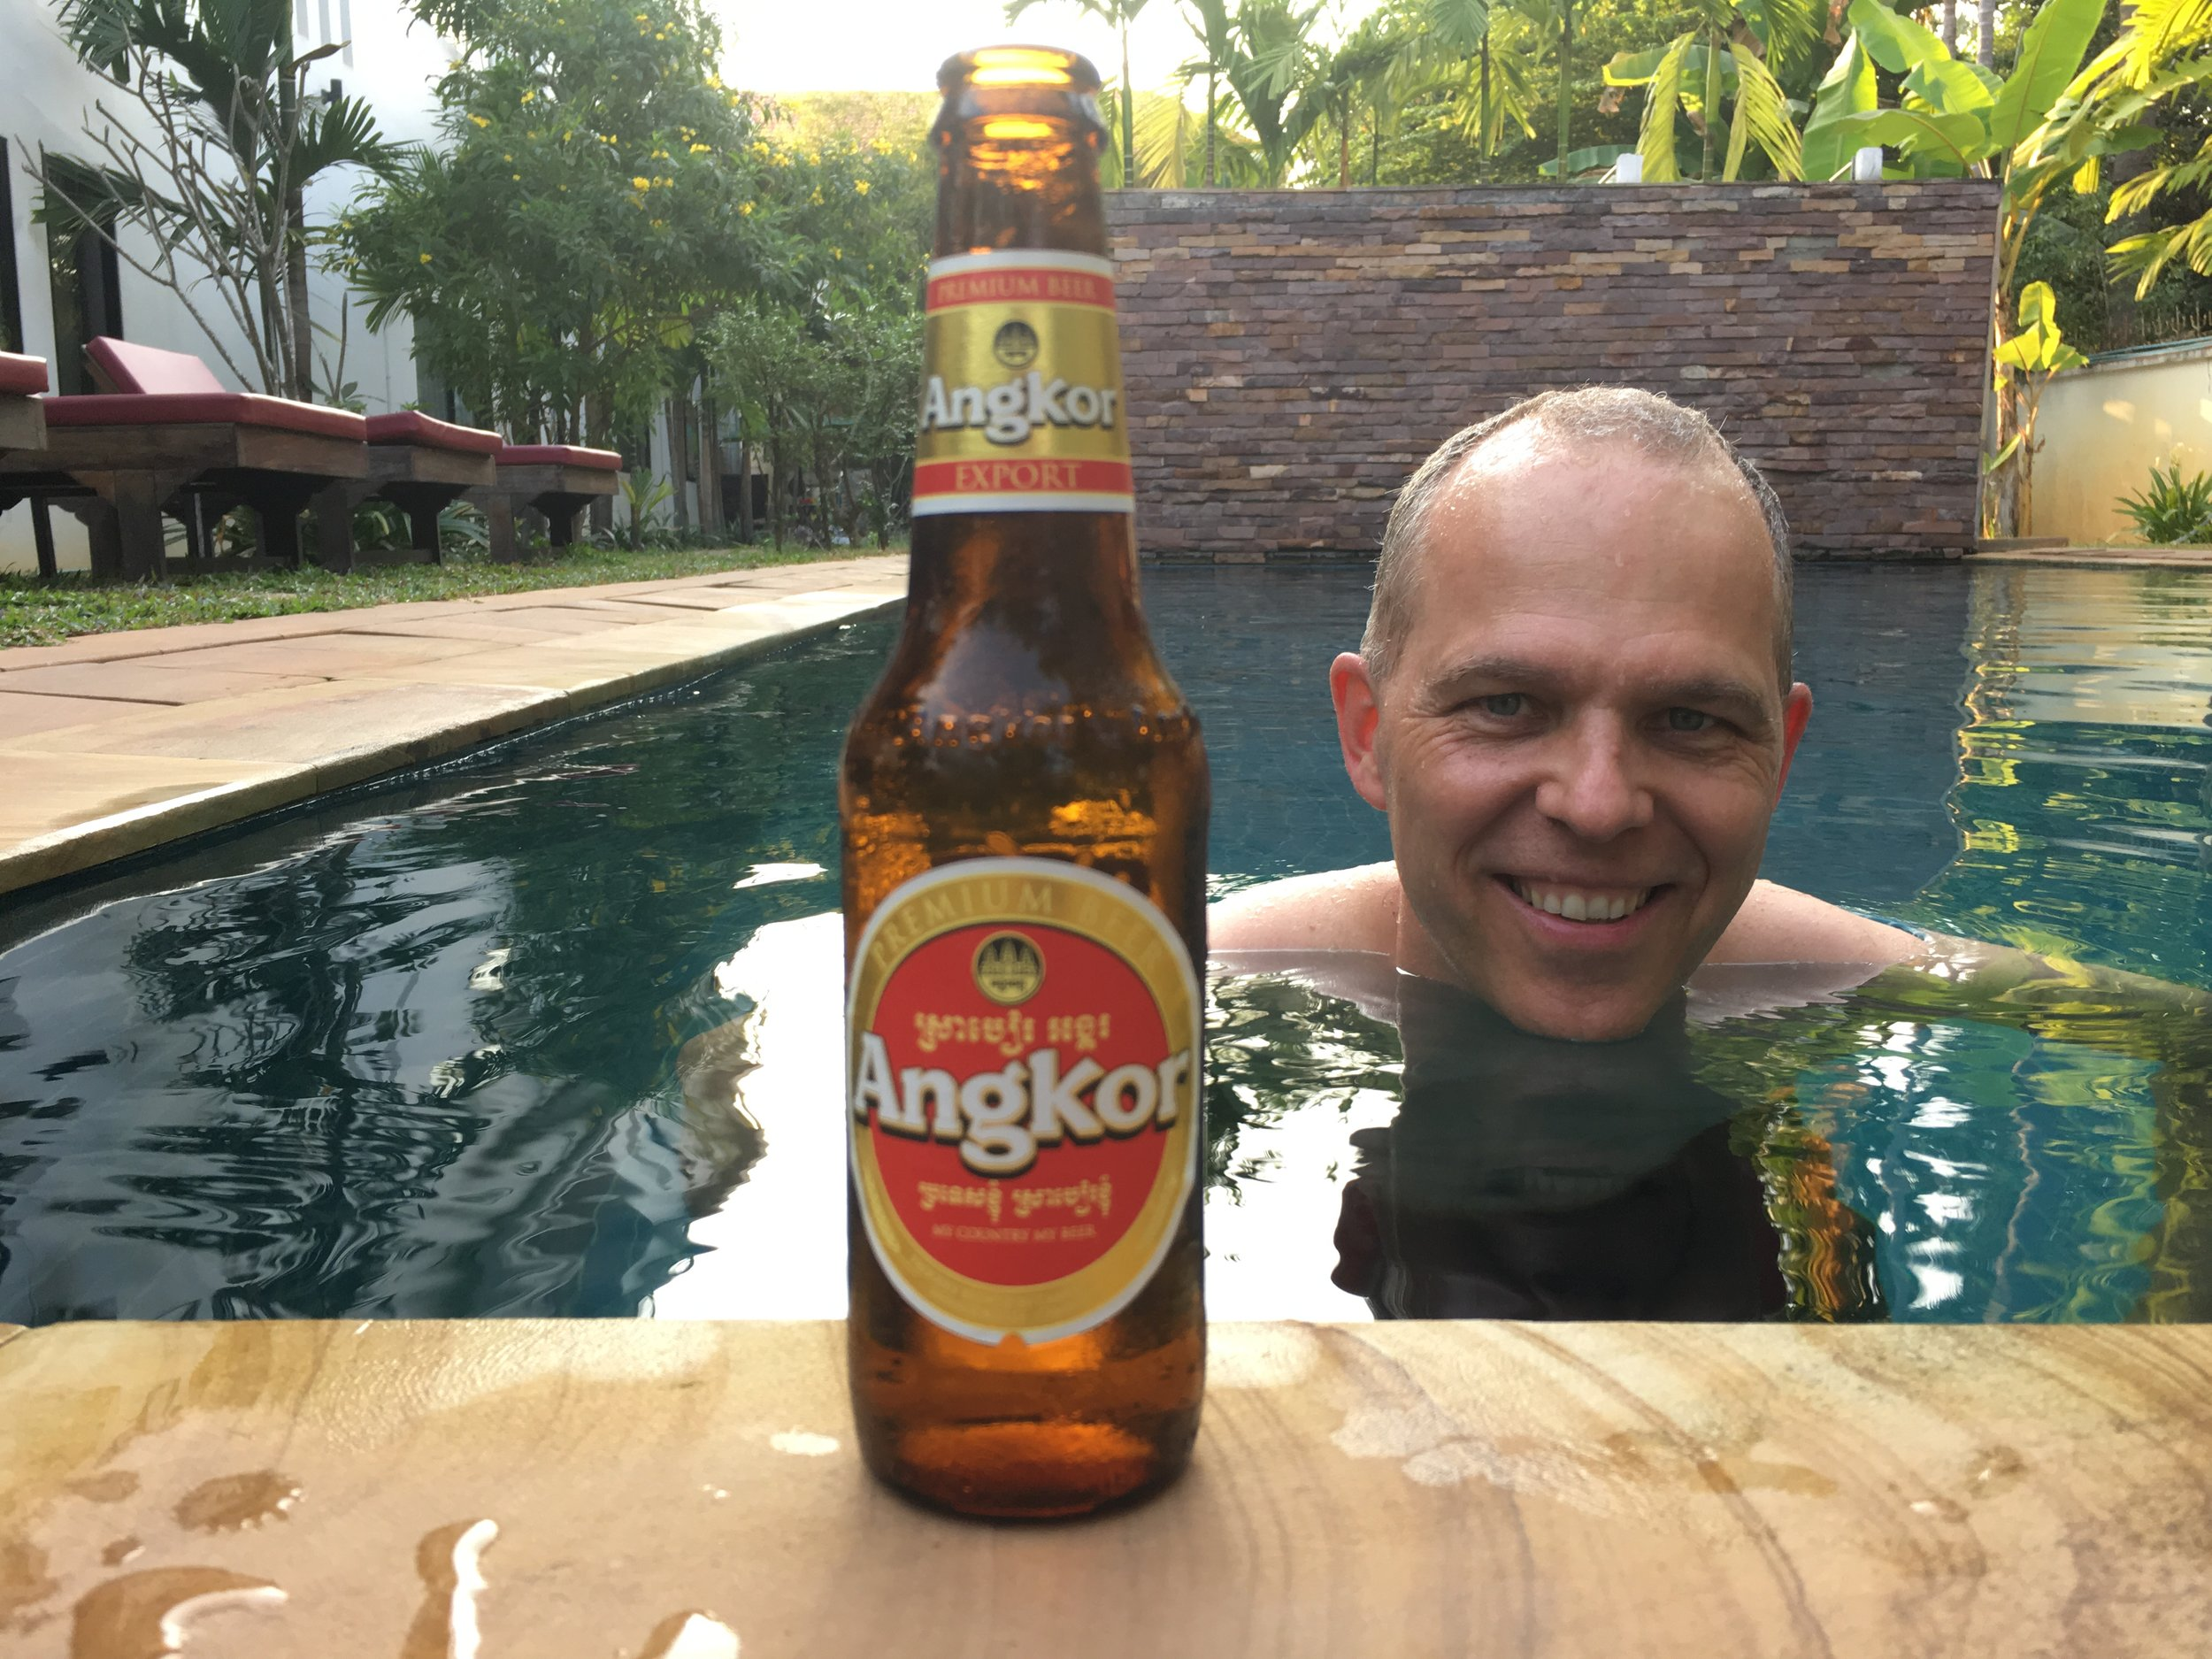 """Adding another Beer to the list of """"Beers From Around the World"""". Enjoying a cold Angkor poolside."""